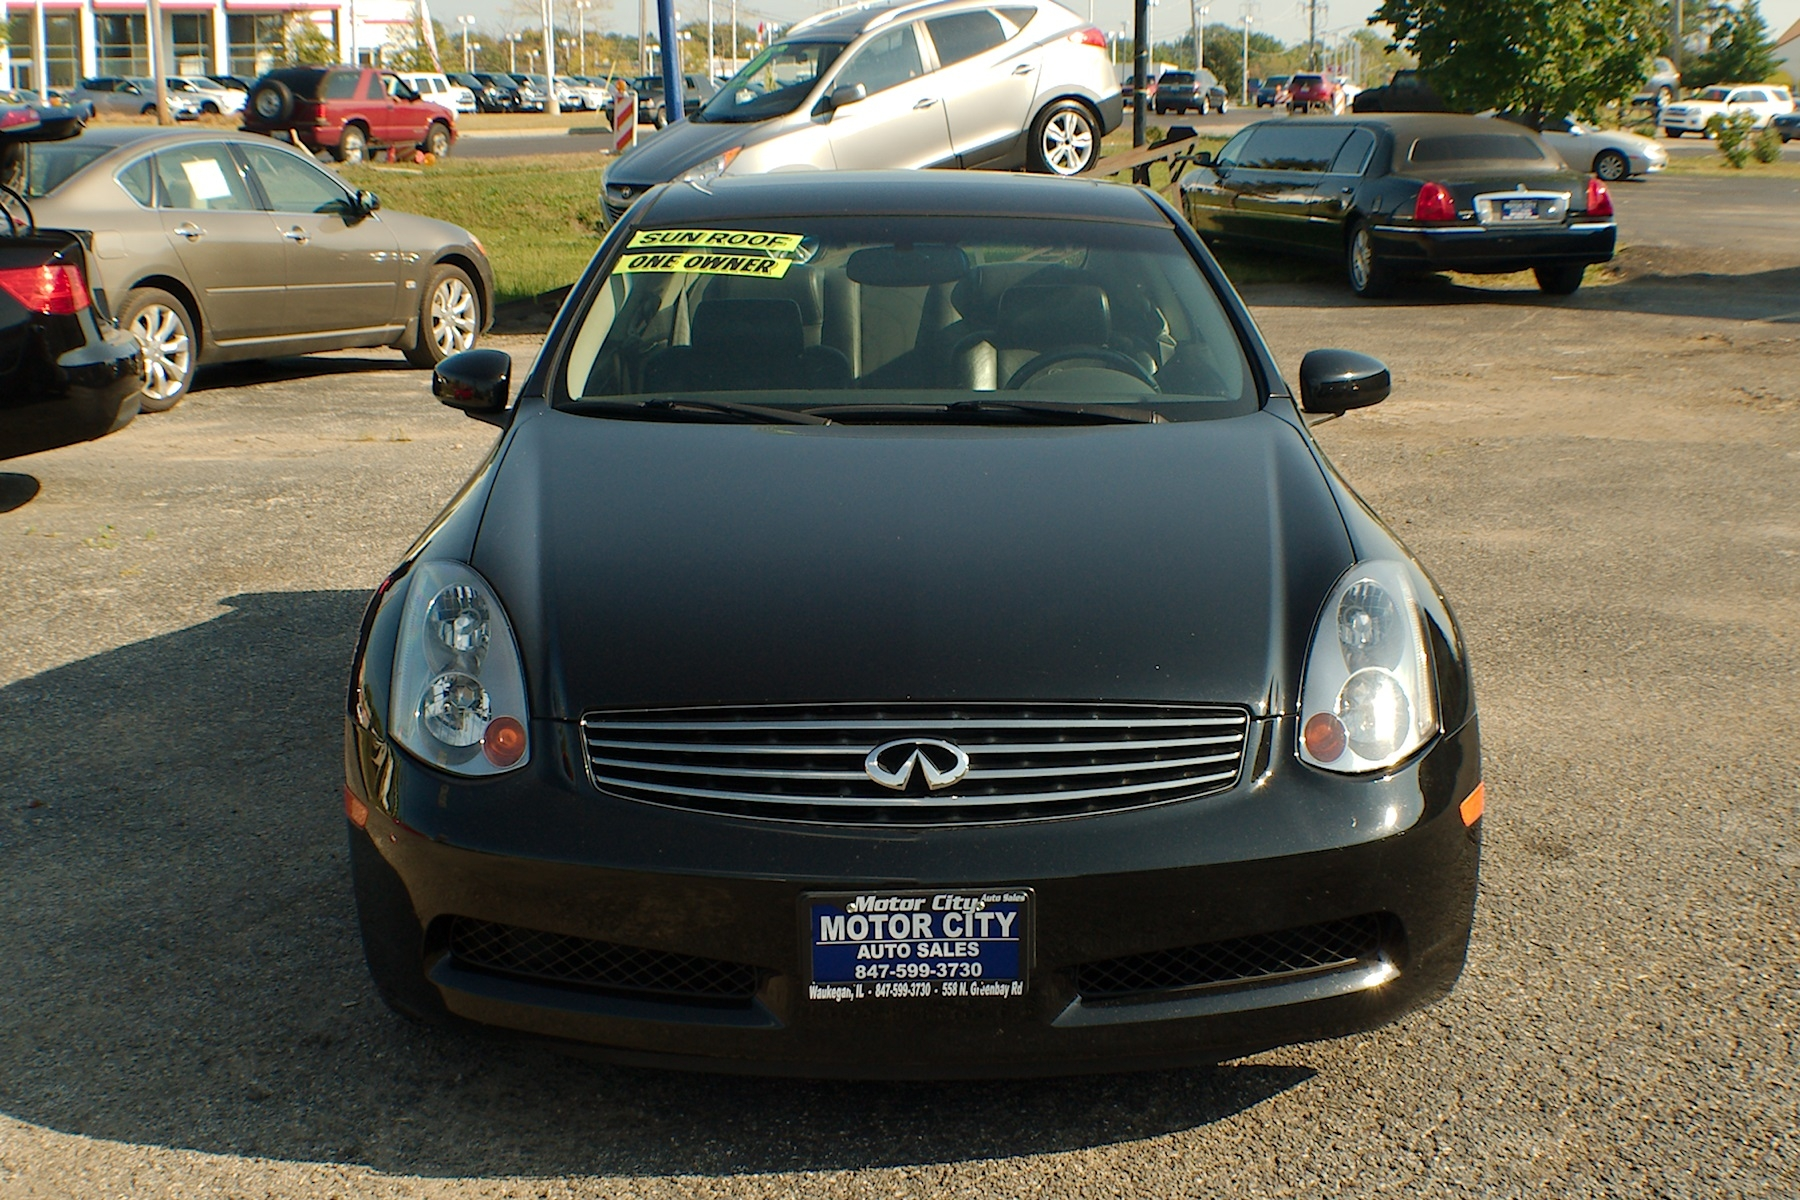 2003 Infiniti G35 Black Sport Coupe used car Sale Gurnee Kenosha Mchenry Chicago Illinois